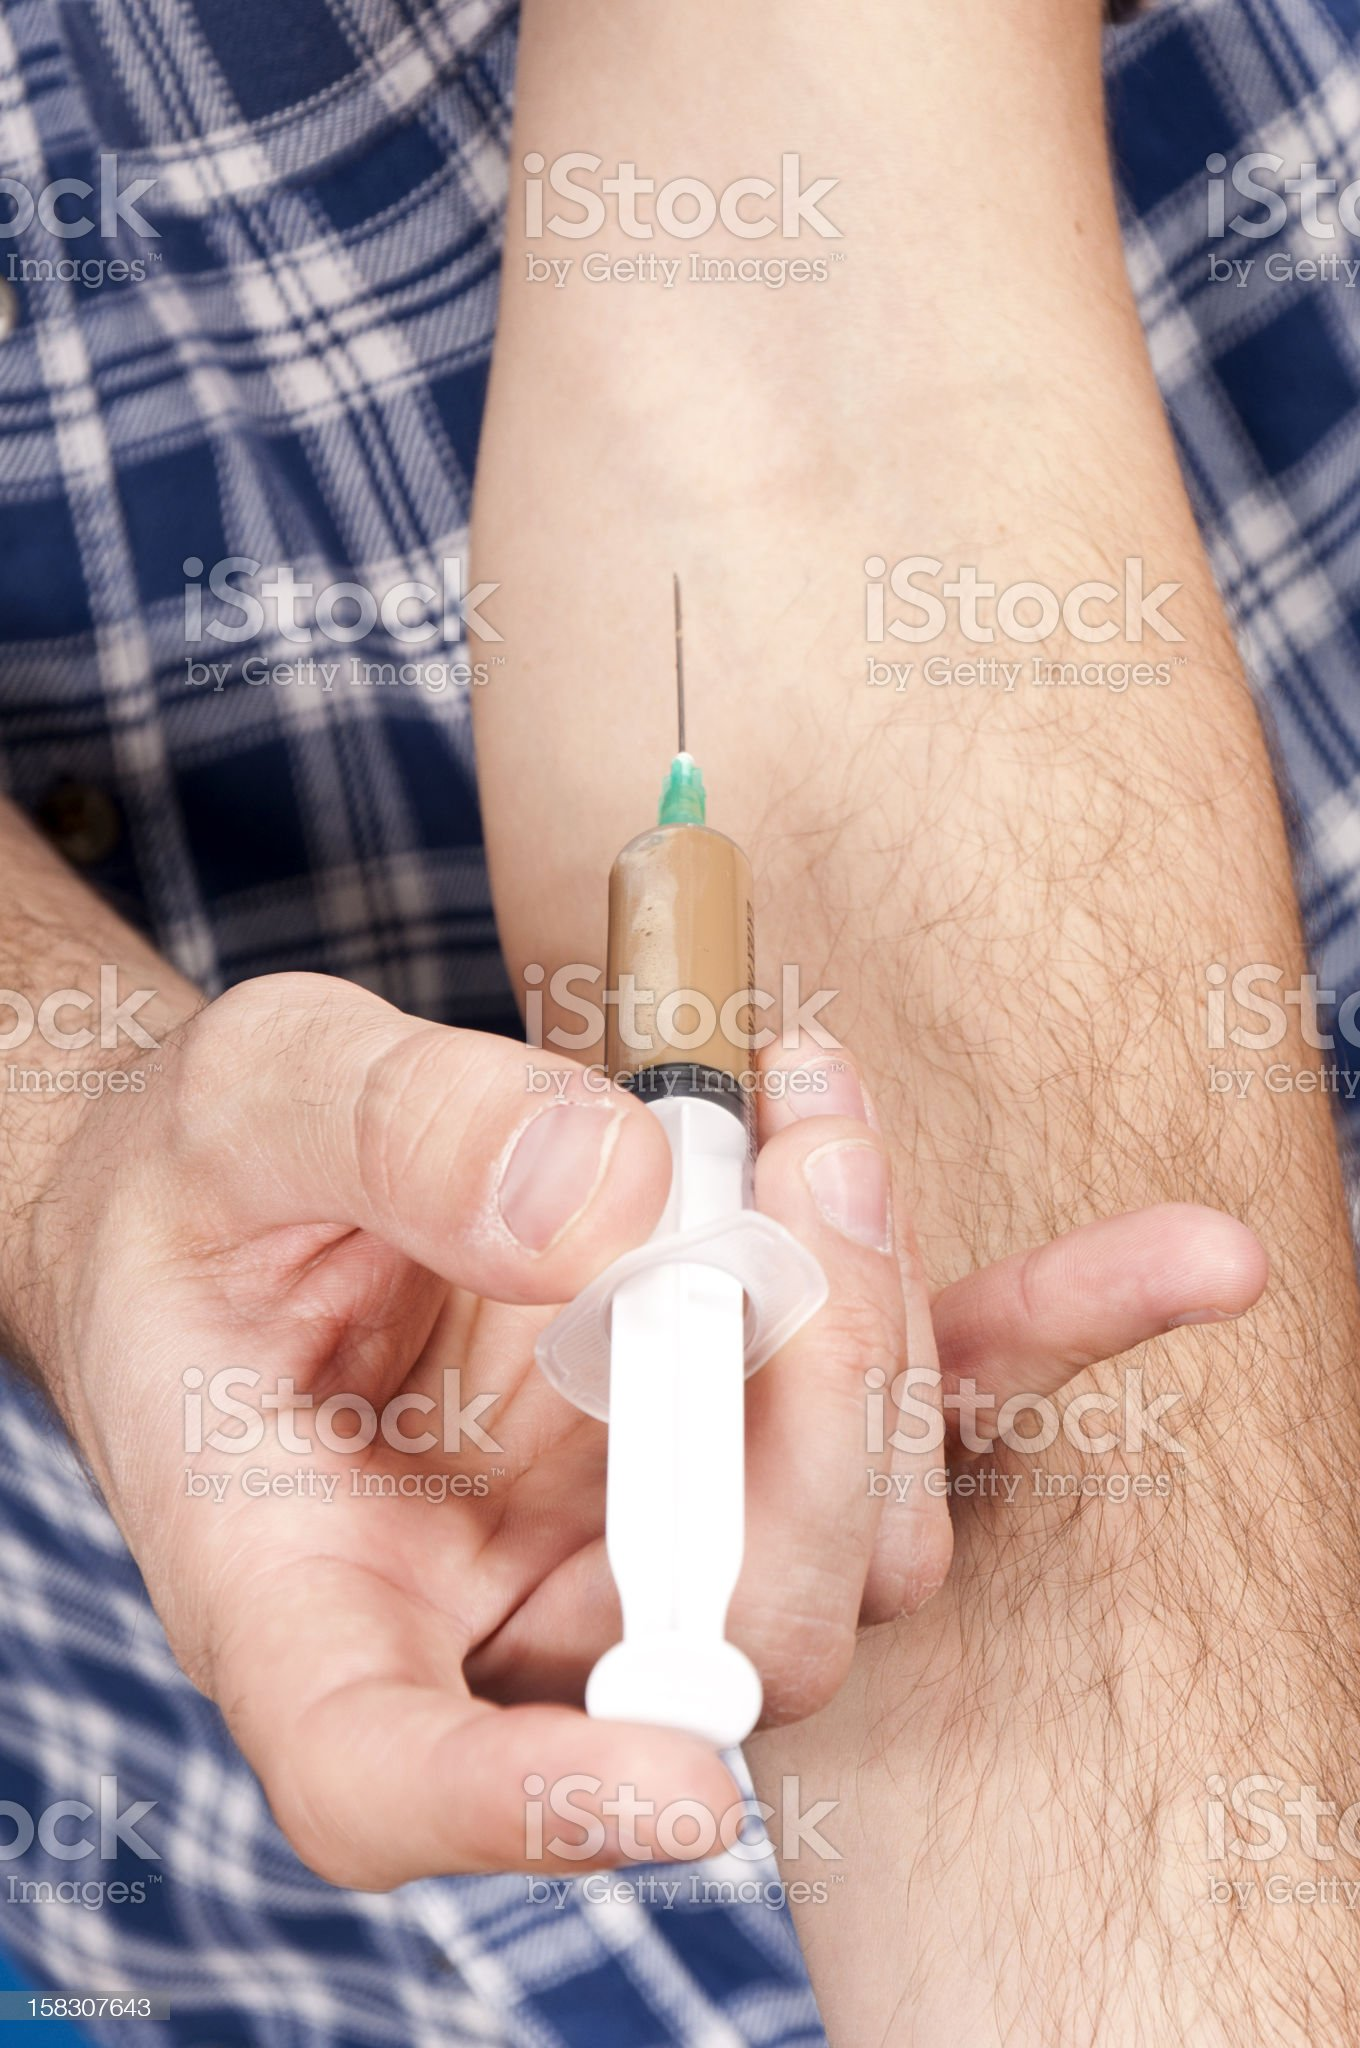 Heroin user royalty-free stock photo